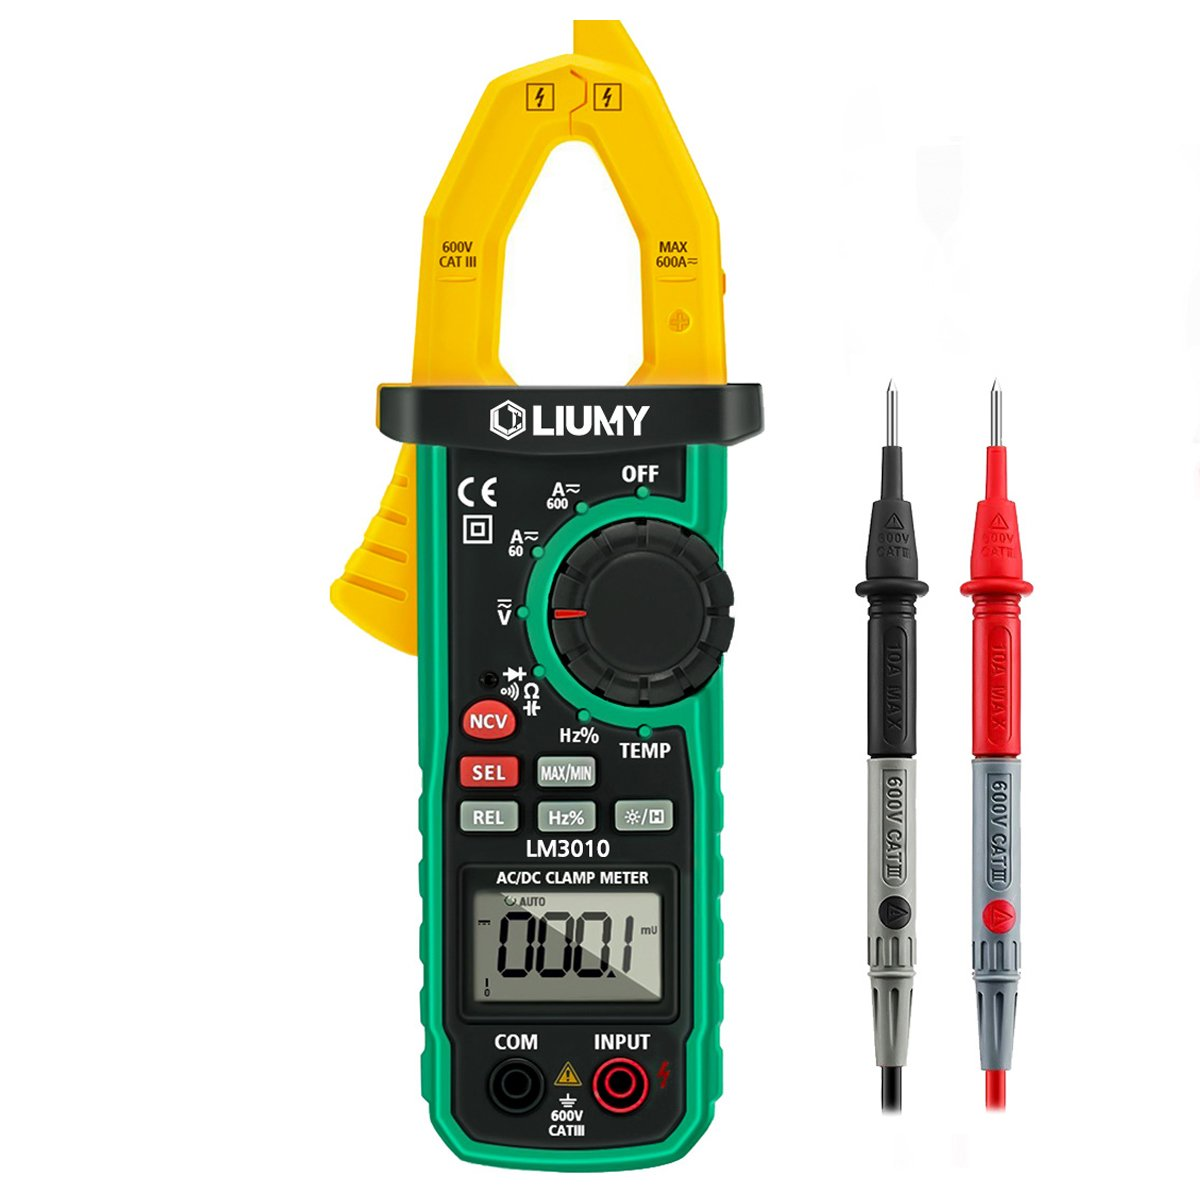 Digital Clamp Meter, LIUMY Auto-Ranging AC/DC Clamp Multimeter with Analog Function, NCV, Work Light/ Memory peak, Non- contact Voltages/ Frequency/ Resistance/ Capacitance/ Connections/ Diodes